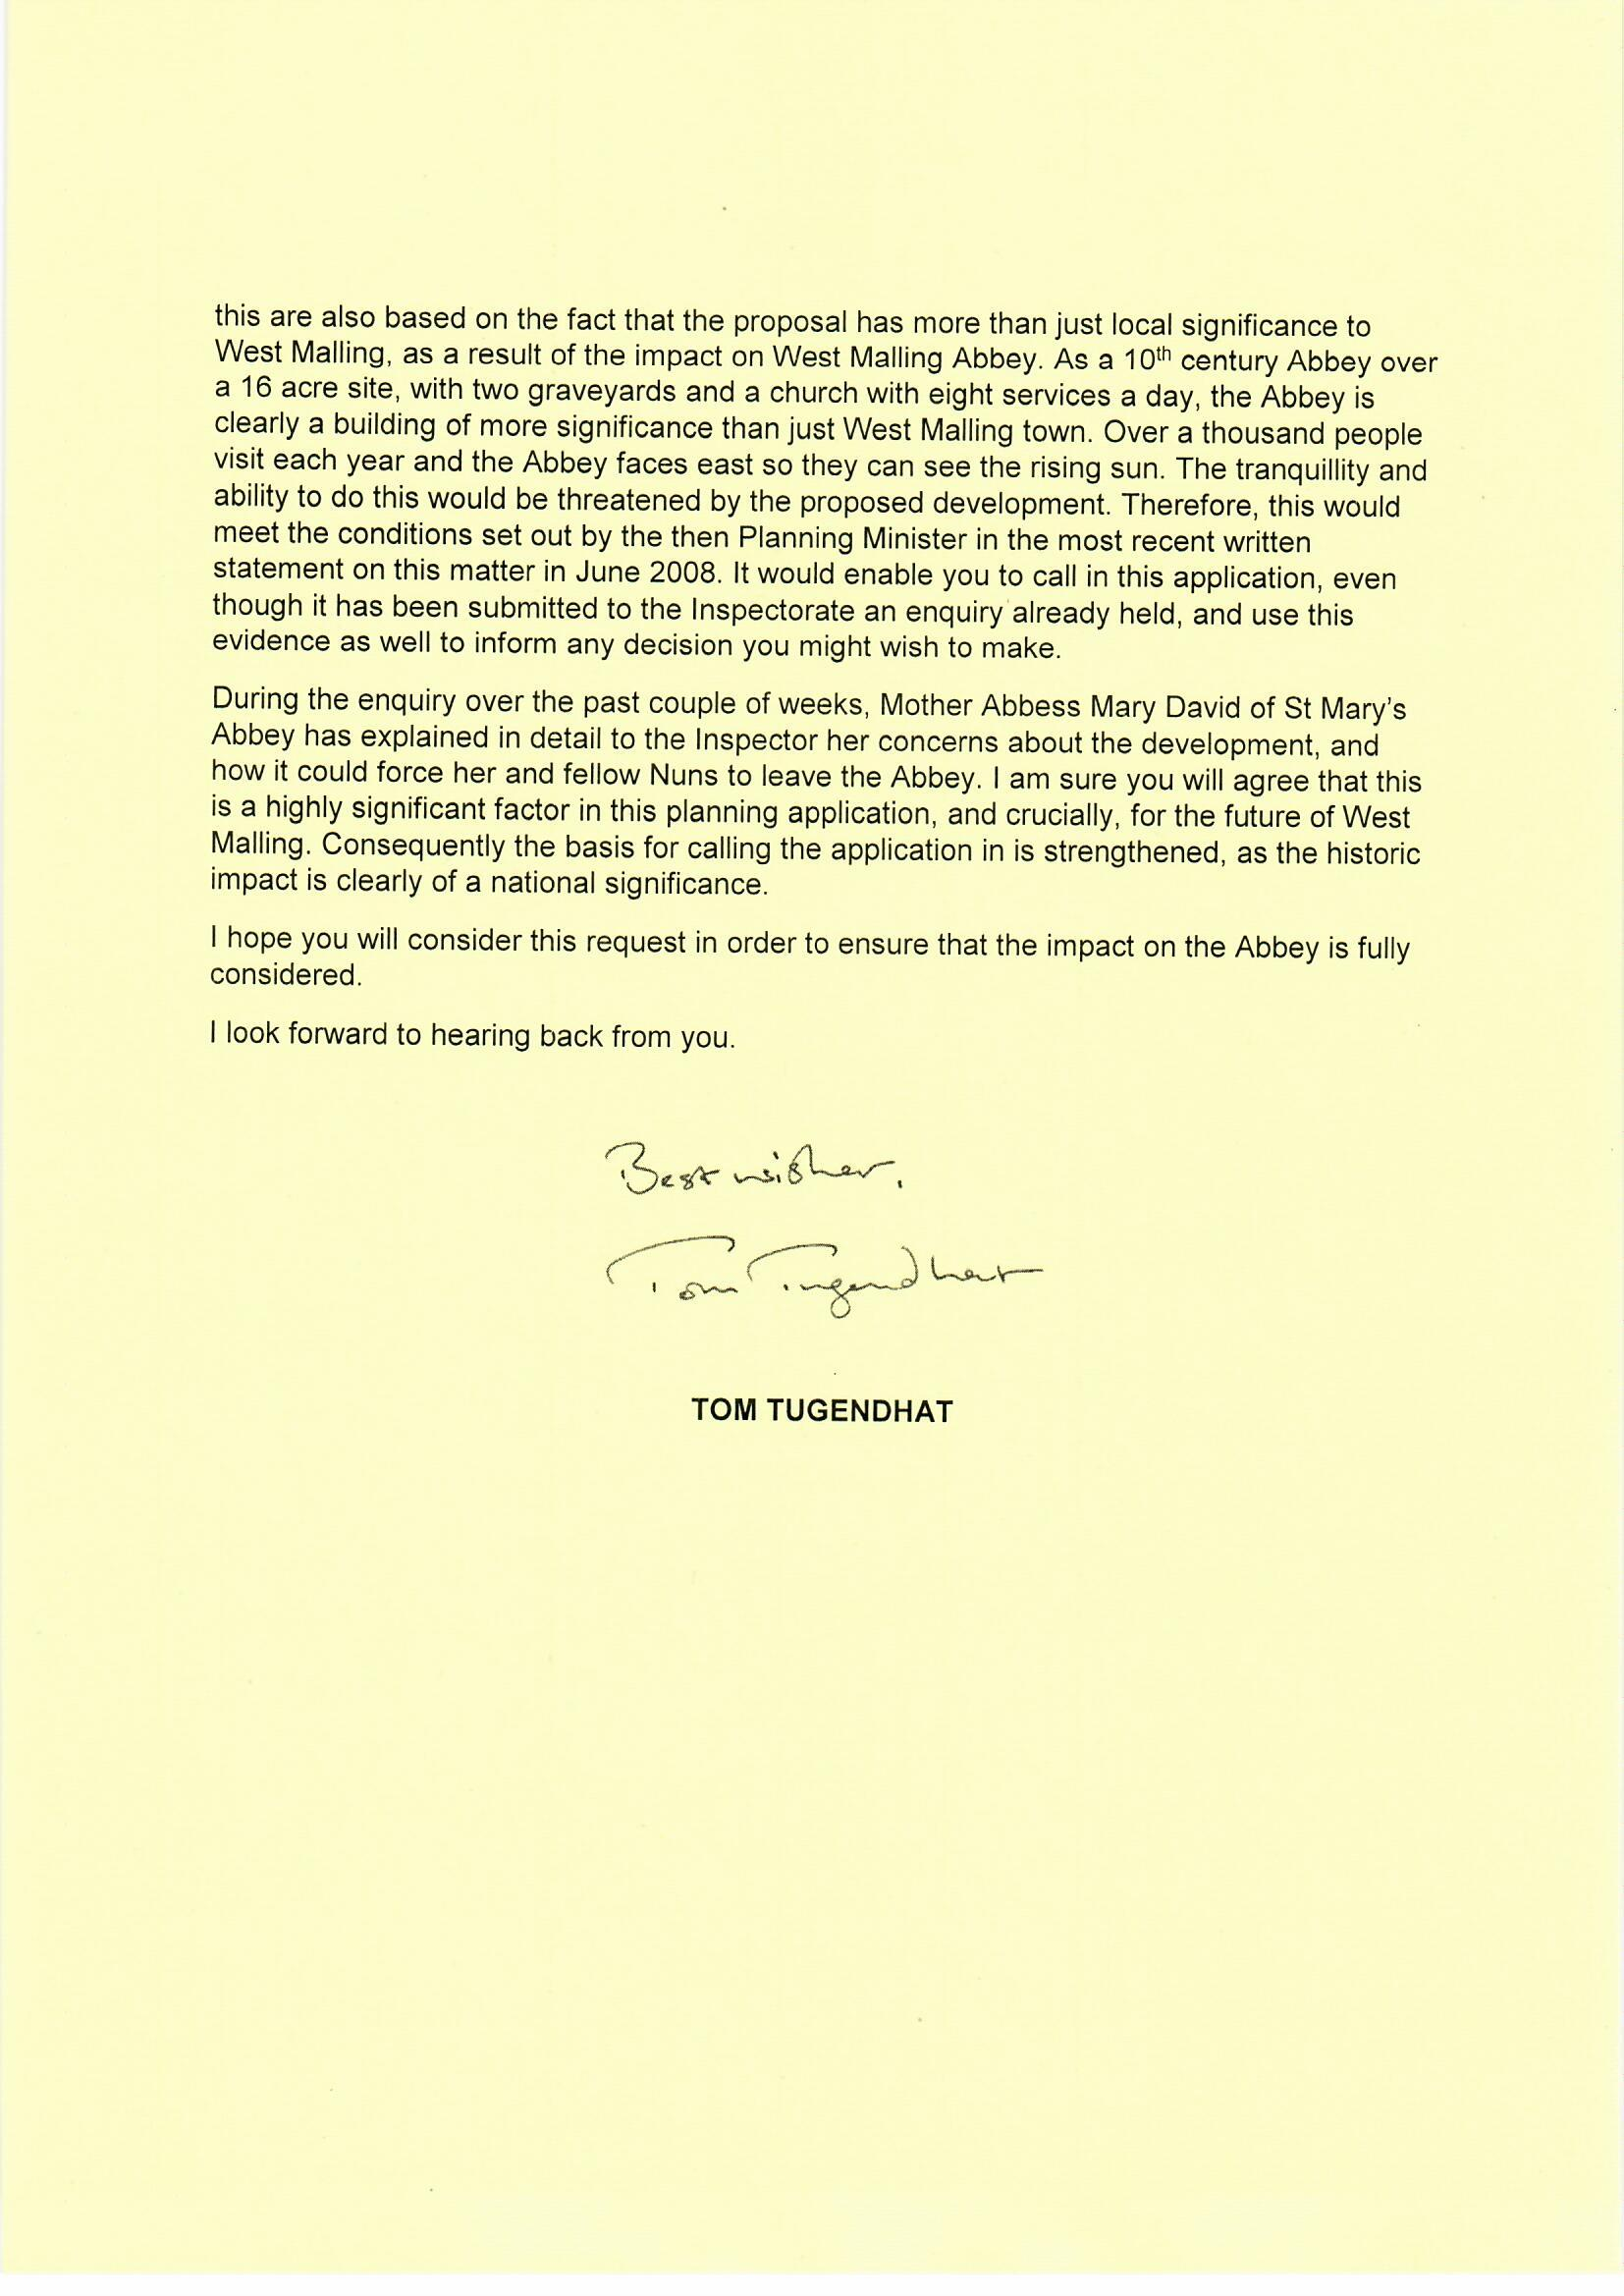 20190905 - Tom Tugendhat to Robert Jenrick, Land east of Lavenders Road and Swan Street, St Mary's Abbey - call in request0003.jpg